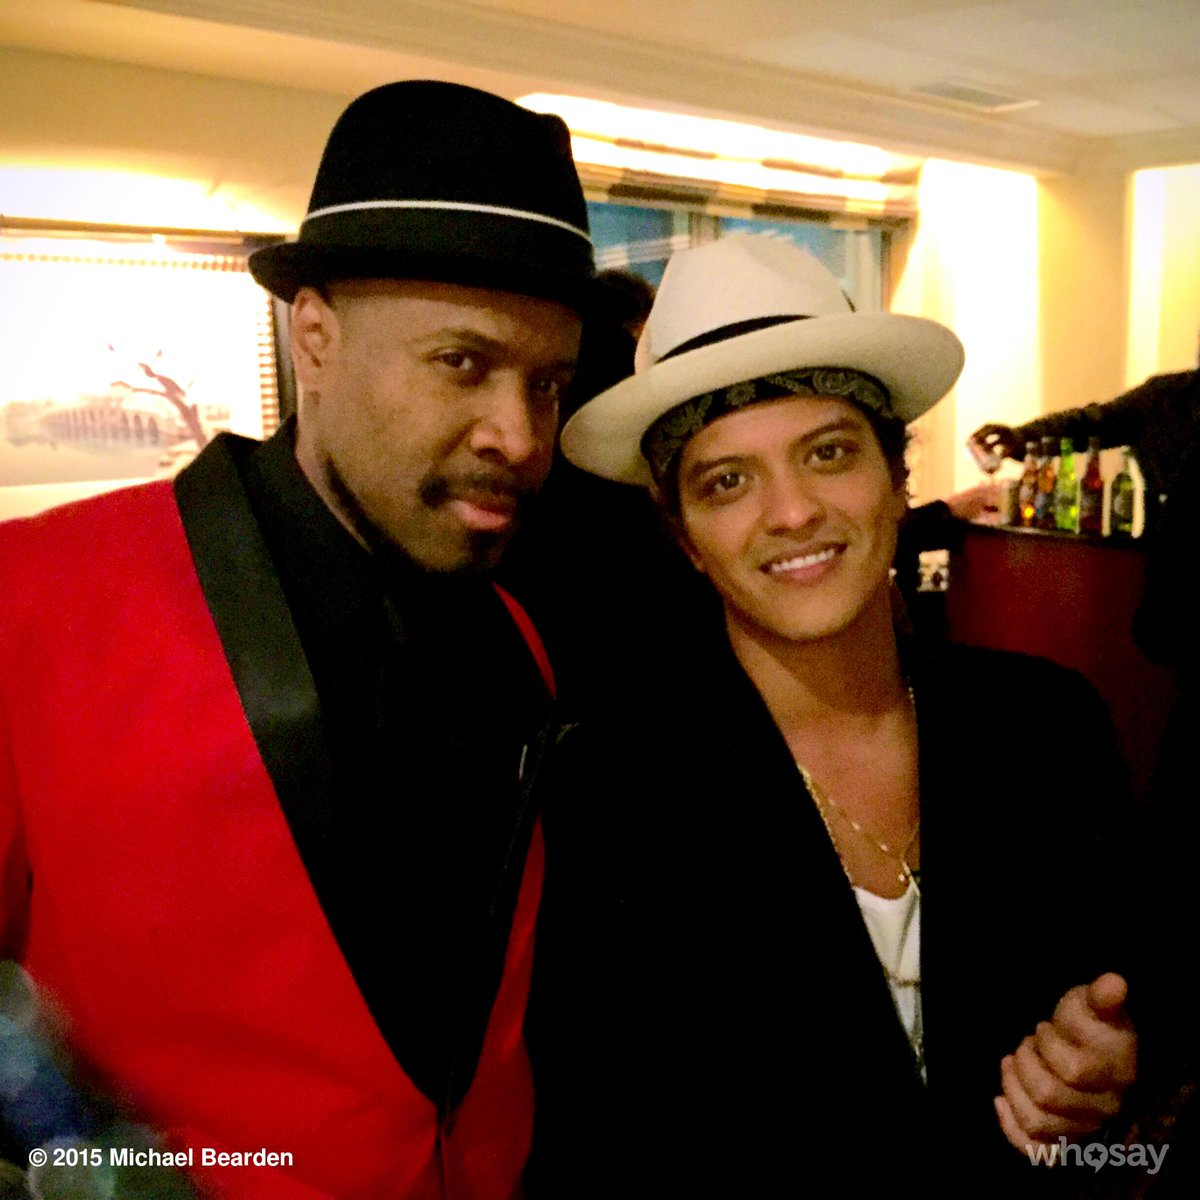 Of all the current artists I've worked with, Bruno Mars is one of my faves. Always nice to work with truth! M~ #tbt http://t.co/ePhZd91CX3